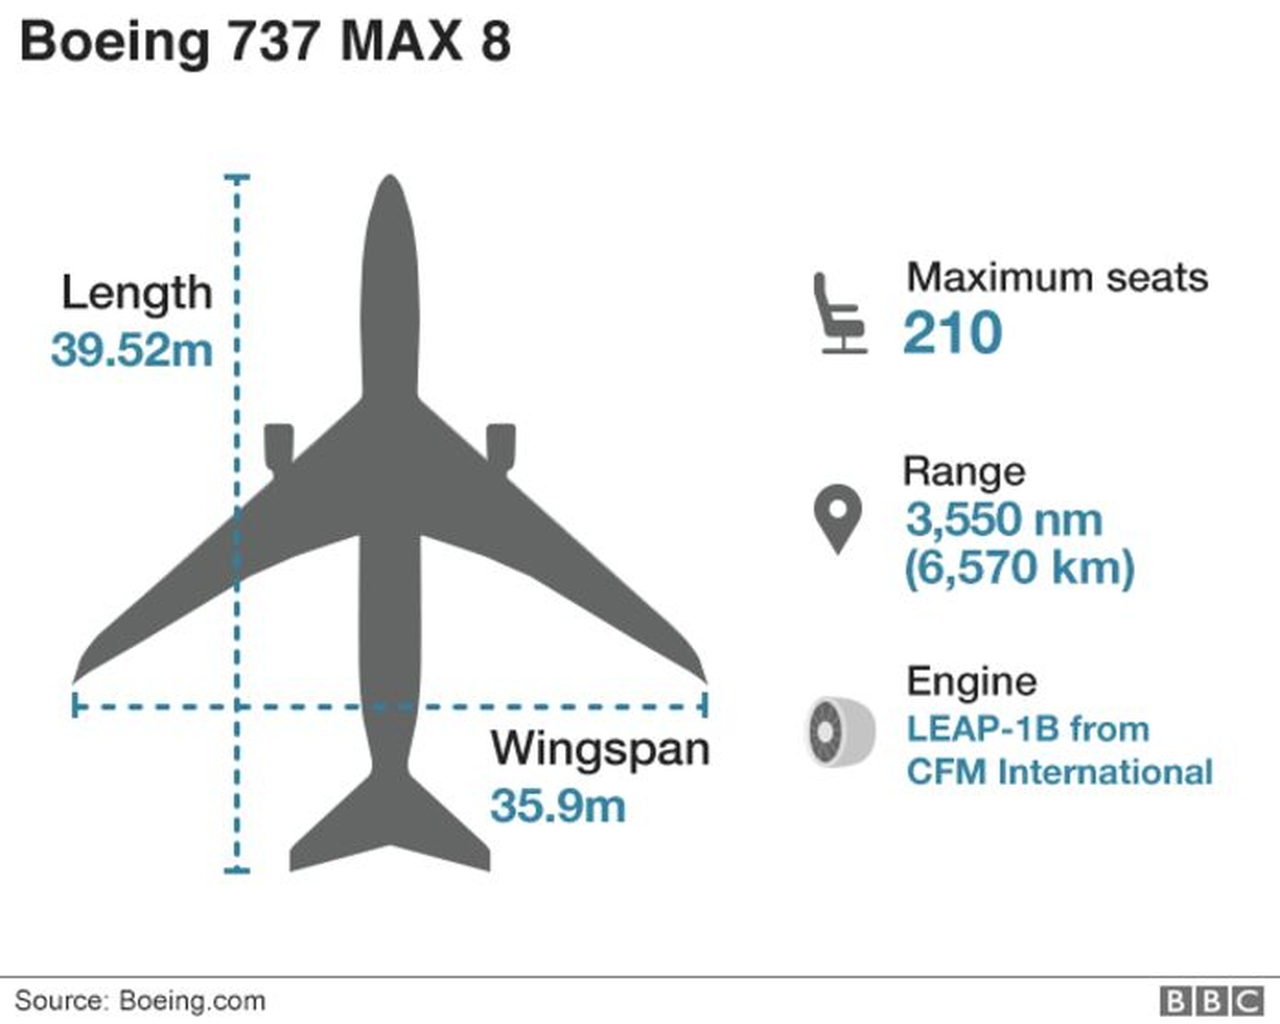 Boeing 747 Max 8